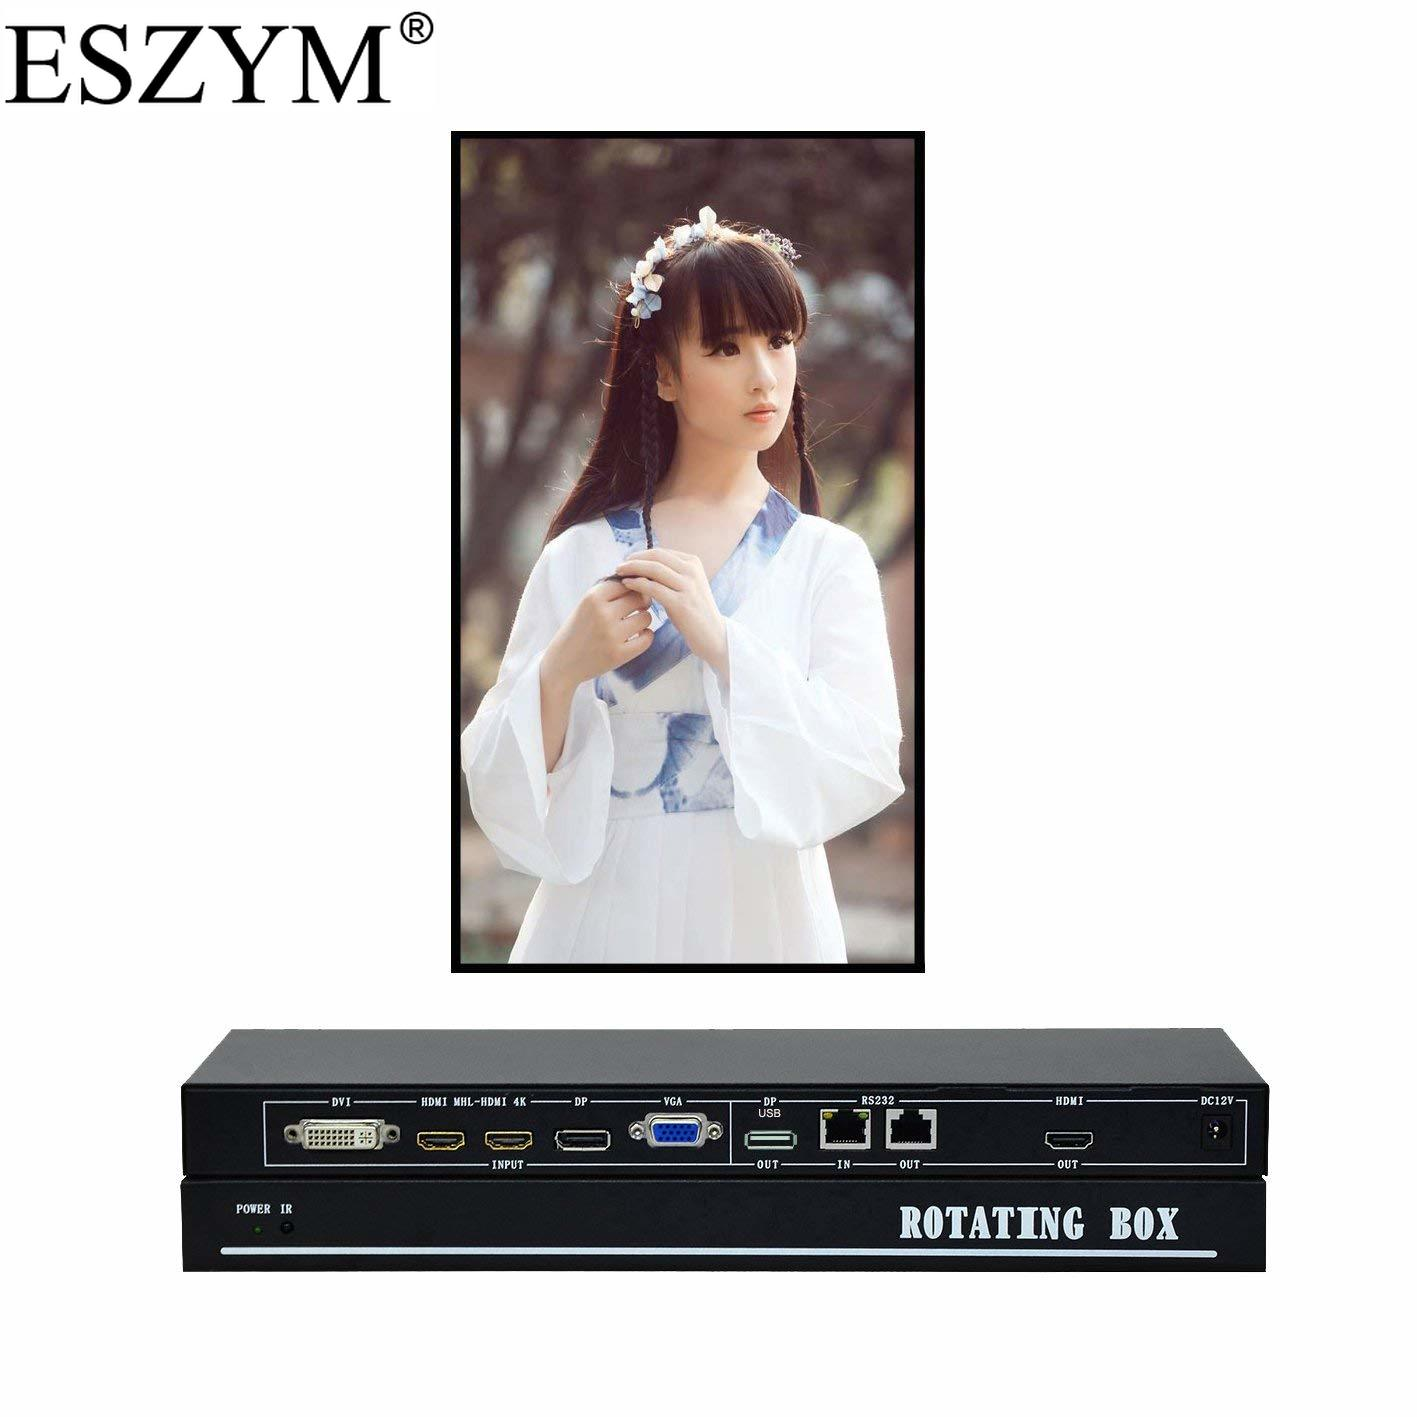 ESZYM Video Rotating Box Support HDMI DP DVI VGA Video inputs 90 or 270 Degree Image flip for Vertical Screen DisplayESZYM Video Rotating Box Support HDMI DP DVI VGA Video inputs 90 or 270 Degree Image flip for Vertical Screen Display